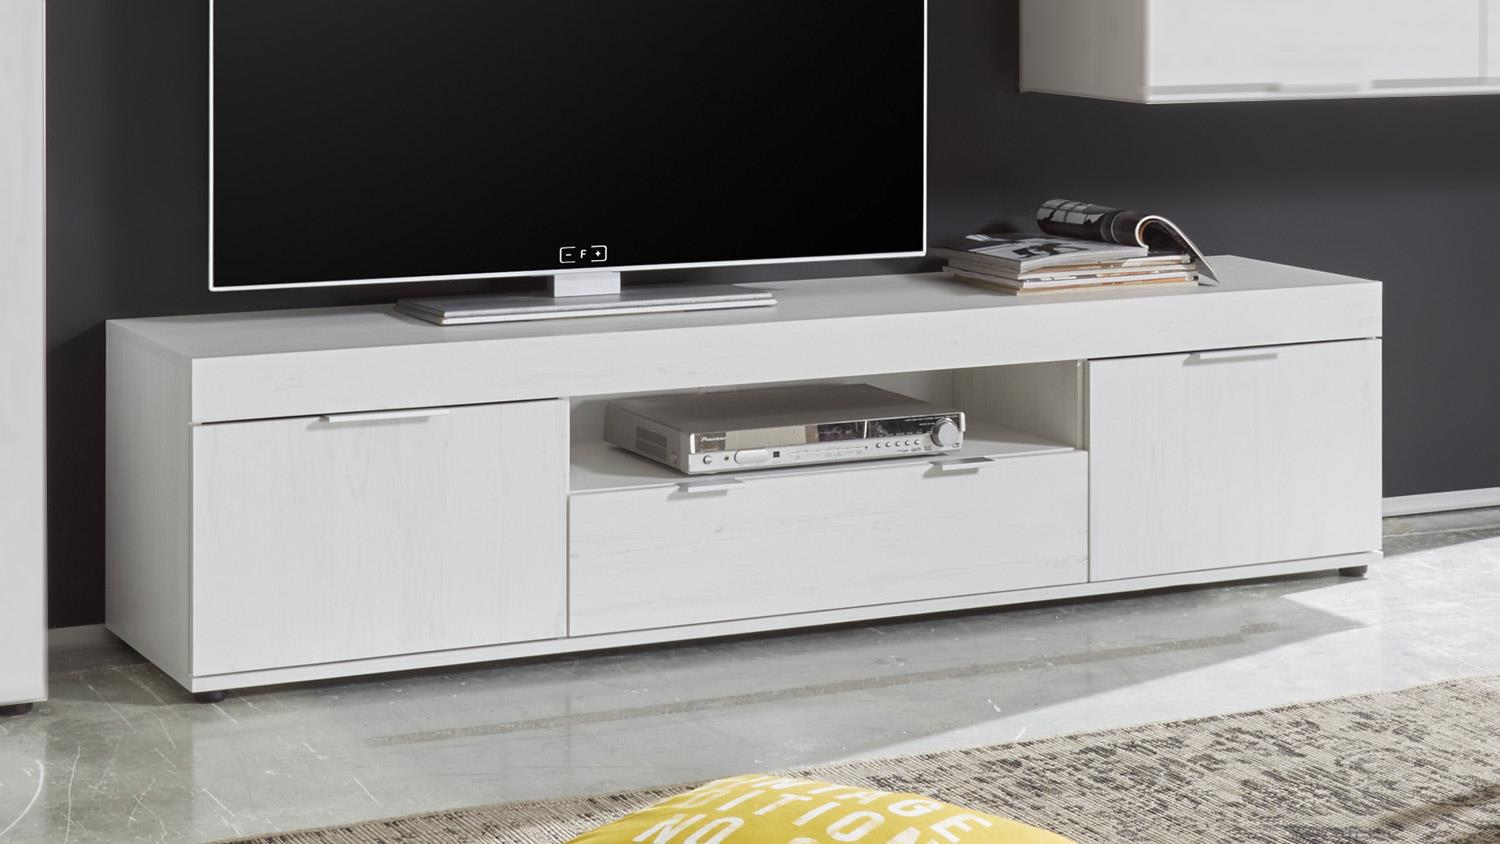 highboard 180 cm breit amazing sideboard with highboard 180 cm breit perfect with highboard. Black Bedroom Furniture Sets. Home Design Ideas